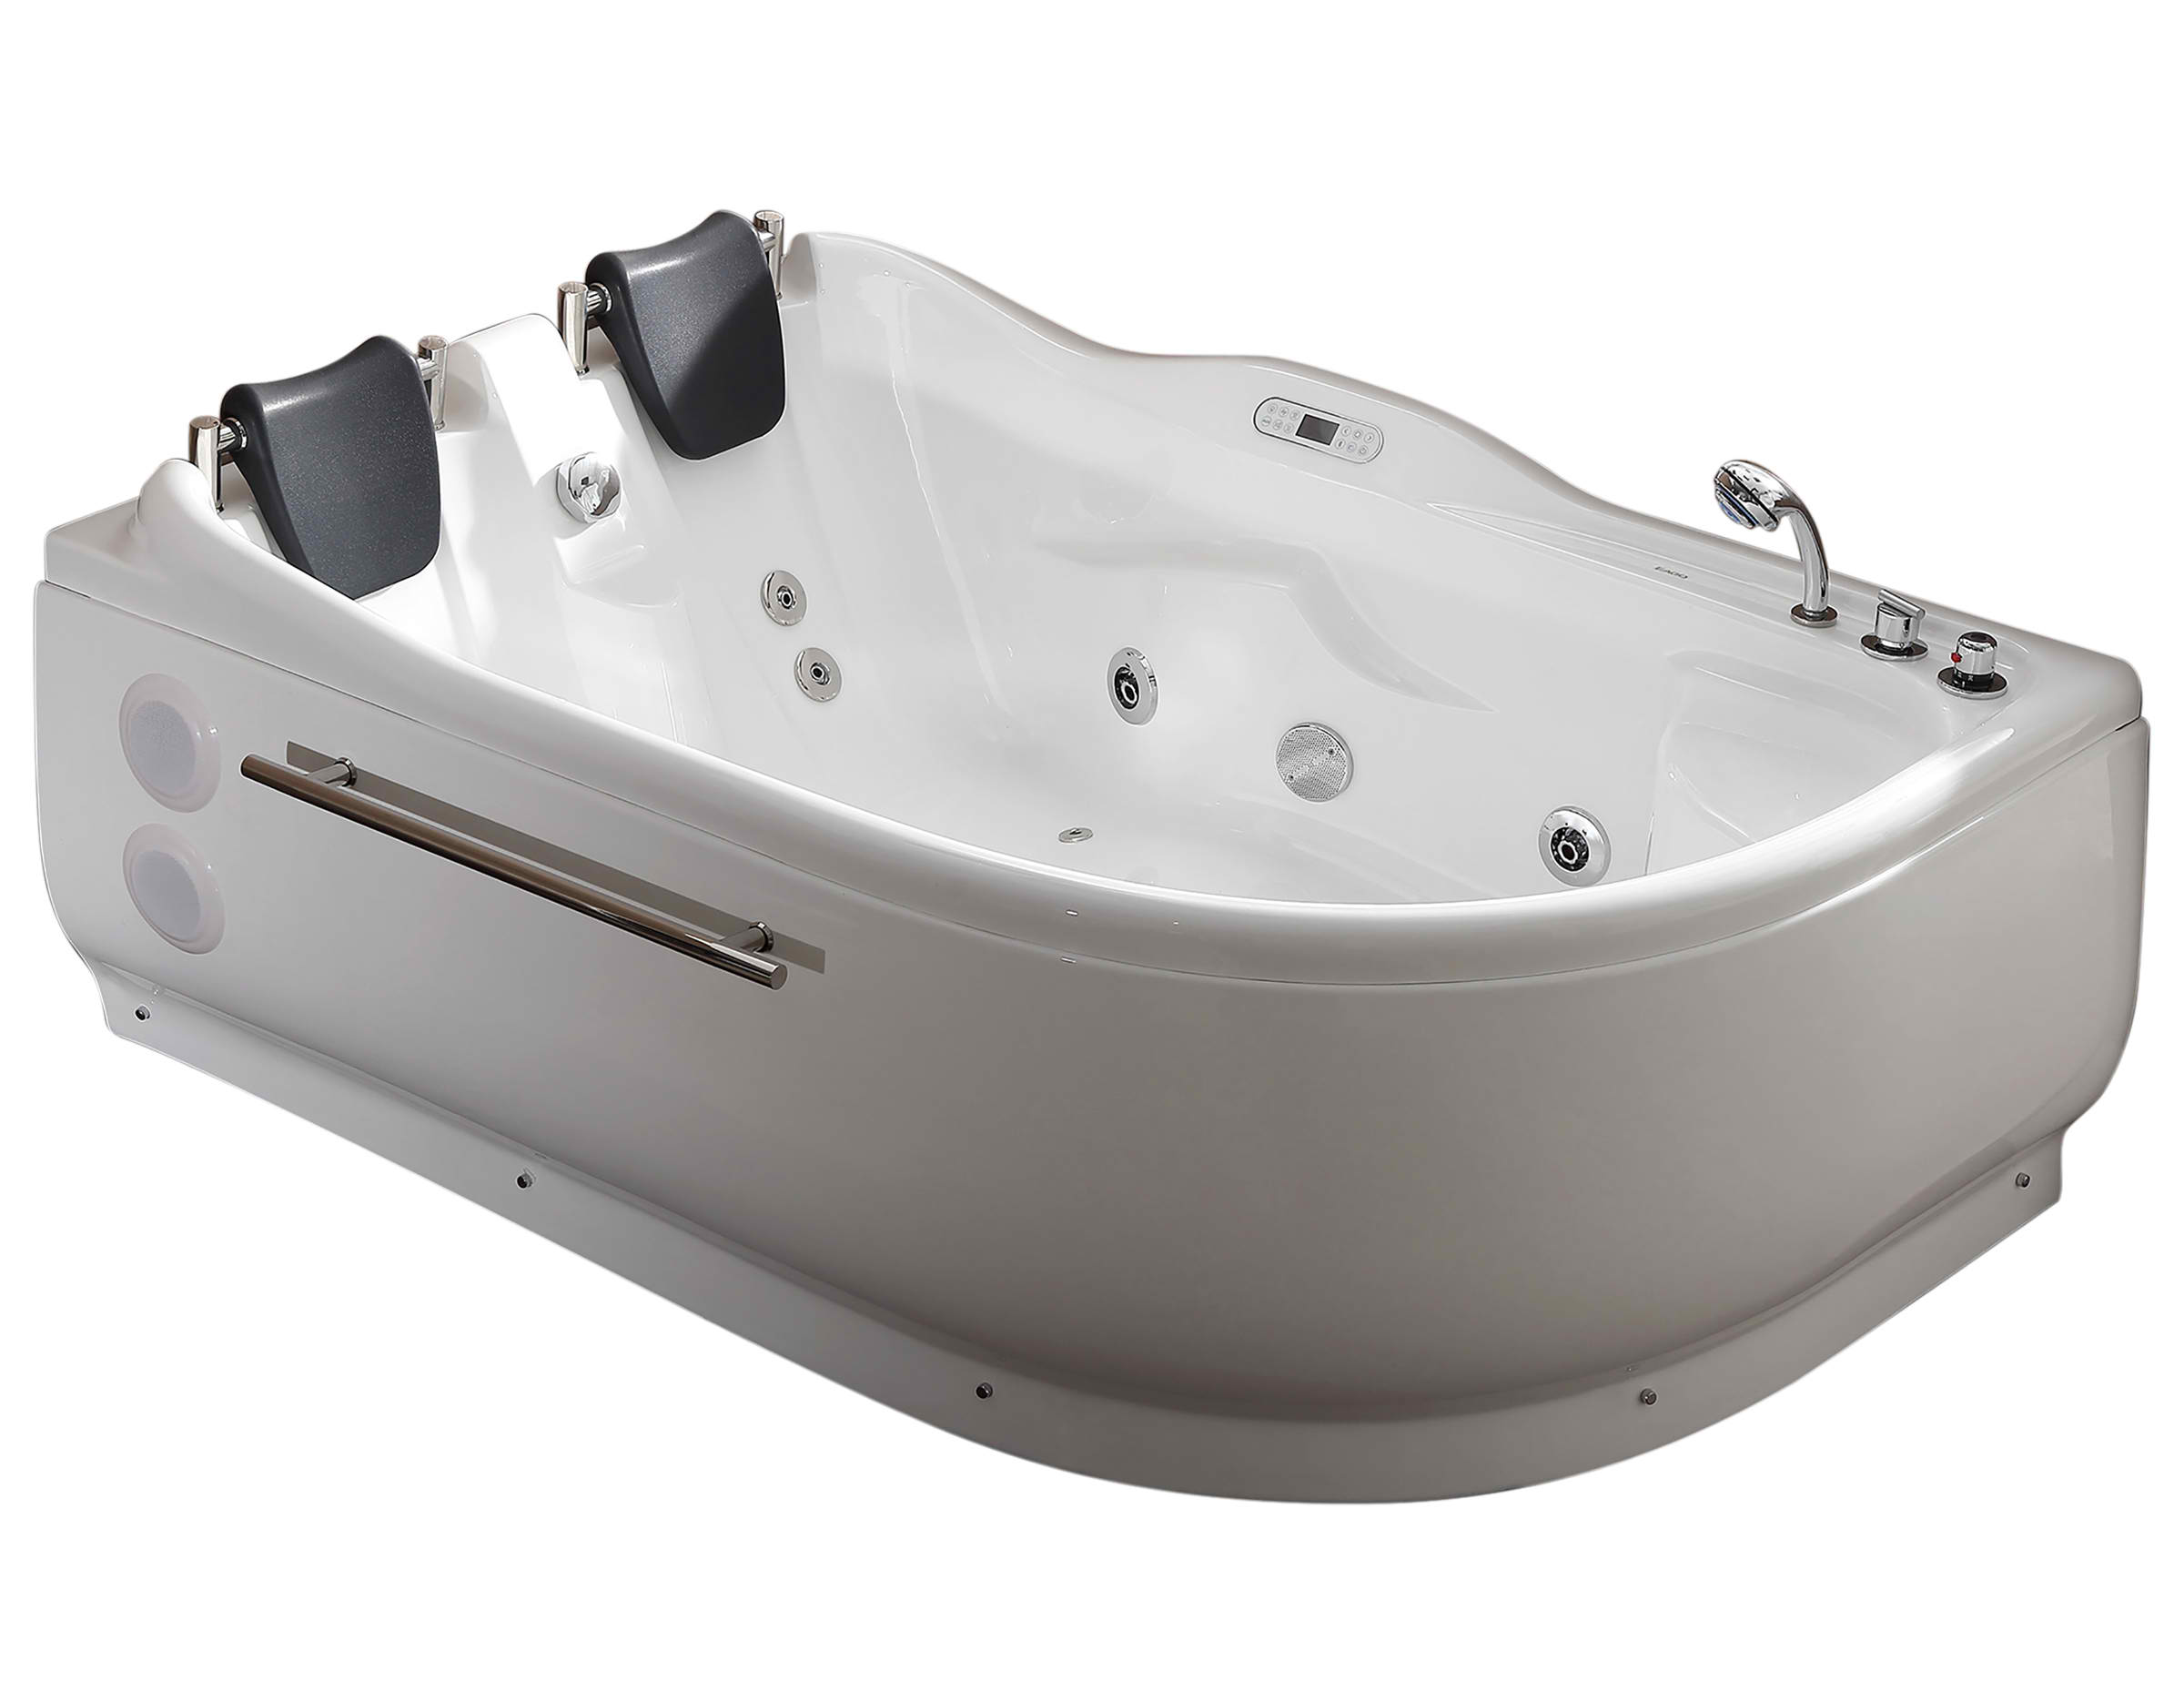 EAGO AM124ETL 6 ft Left or Right Corner Acrylic White Whirlpool Bathtub for Two